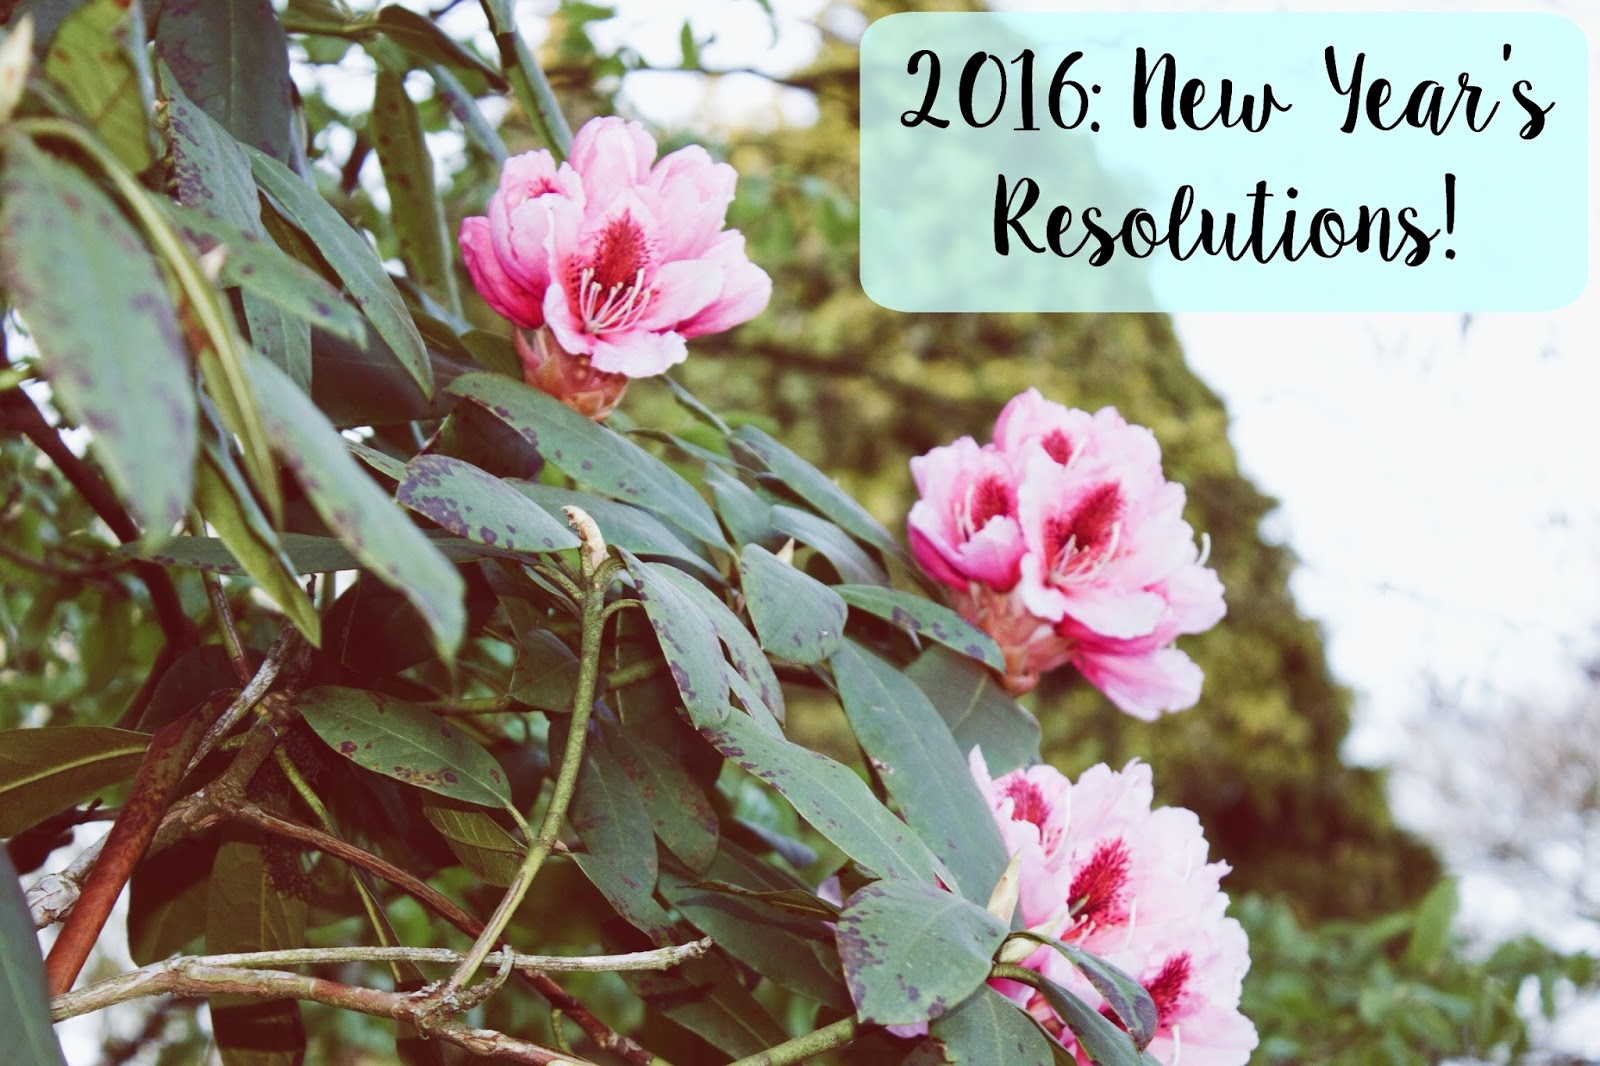 New Year's Resolutions 2016, Darley Park Derby Flowers,